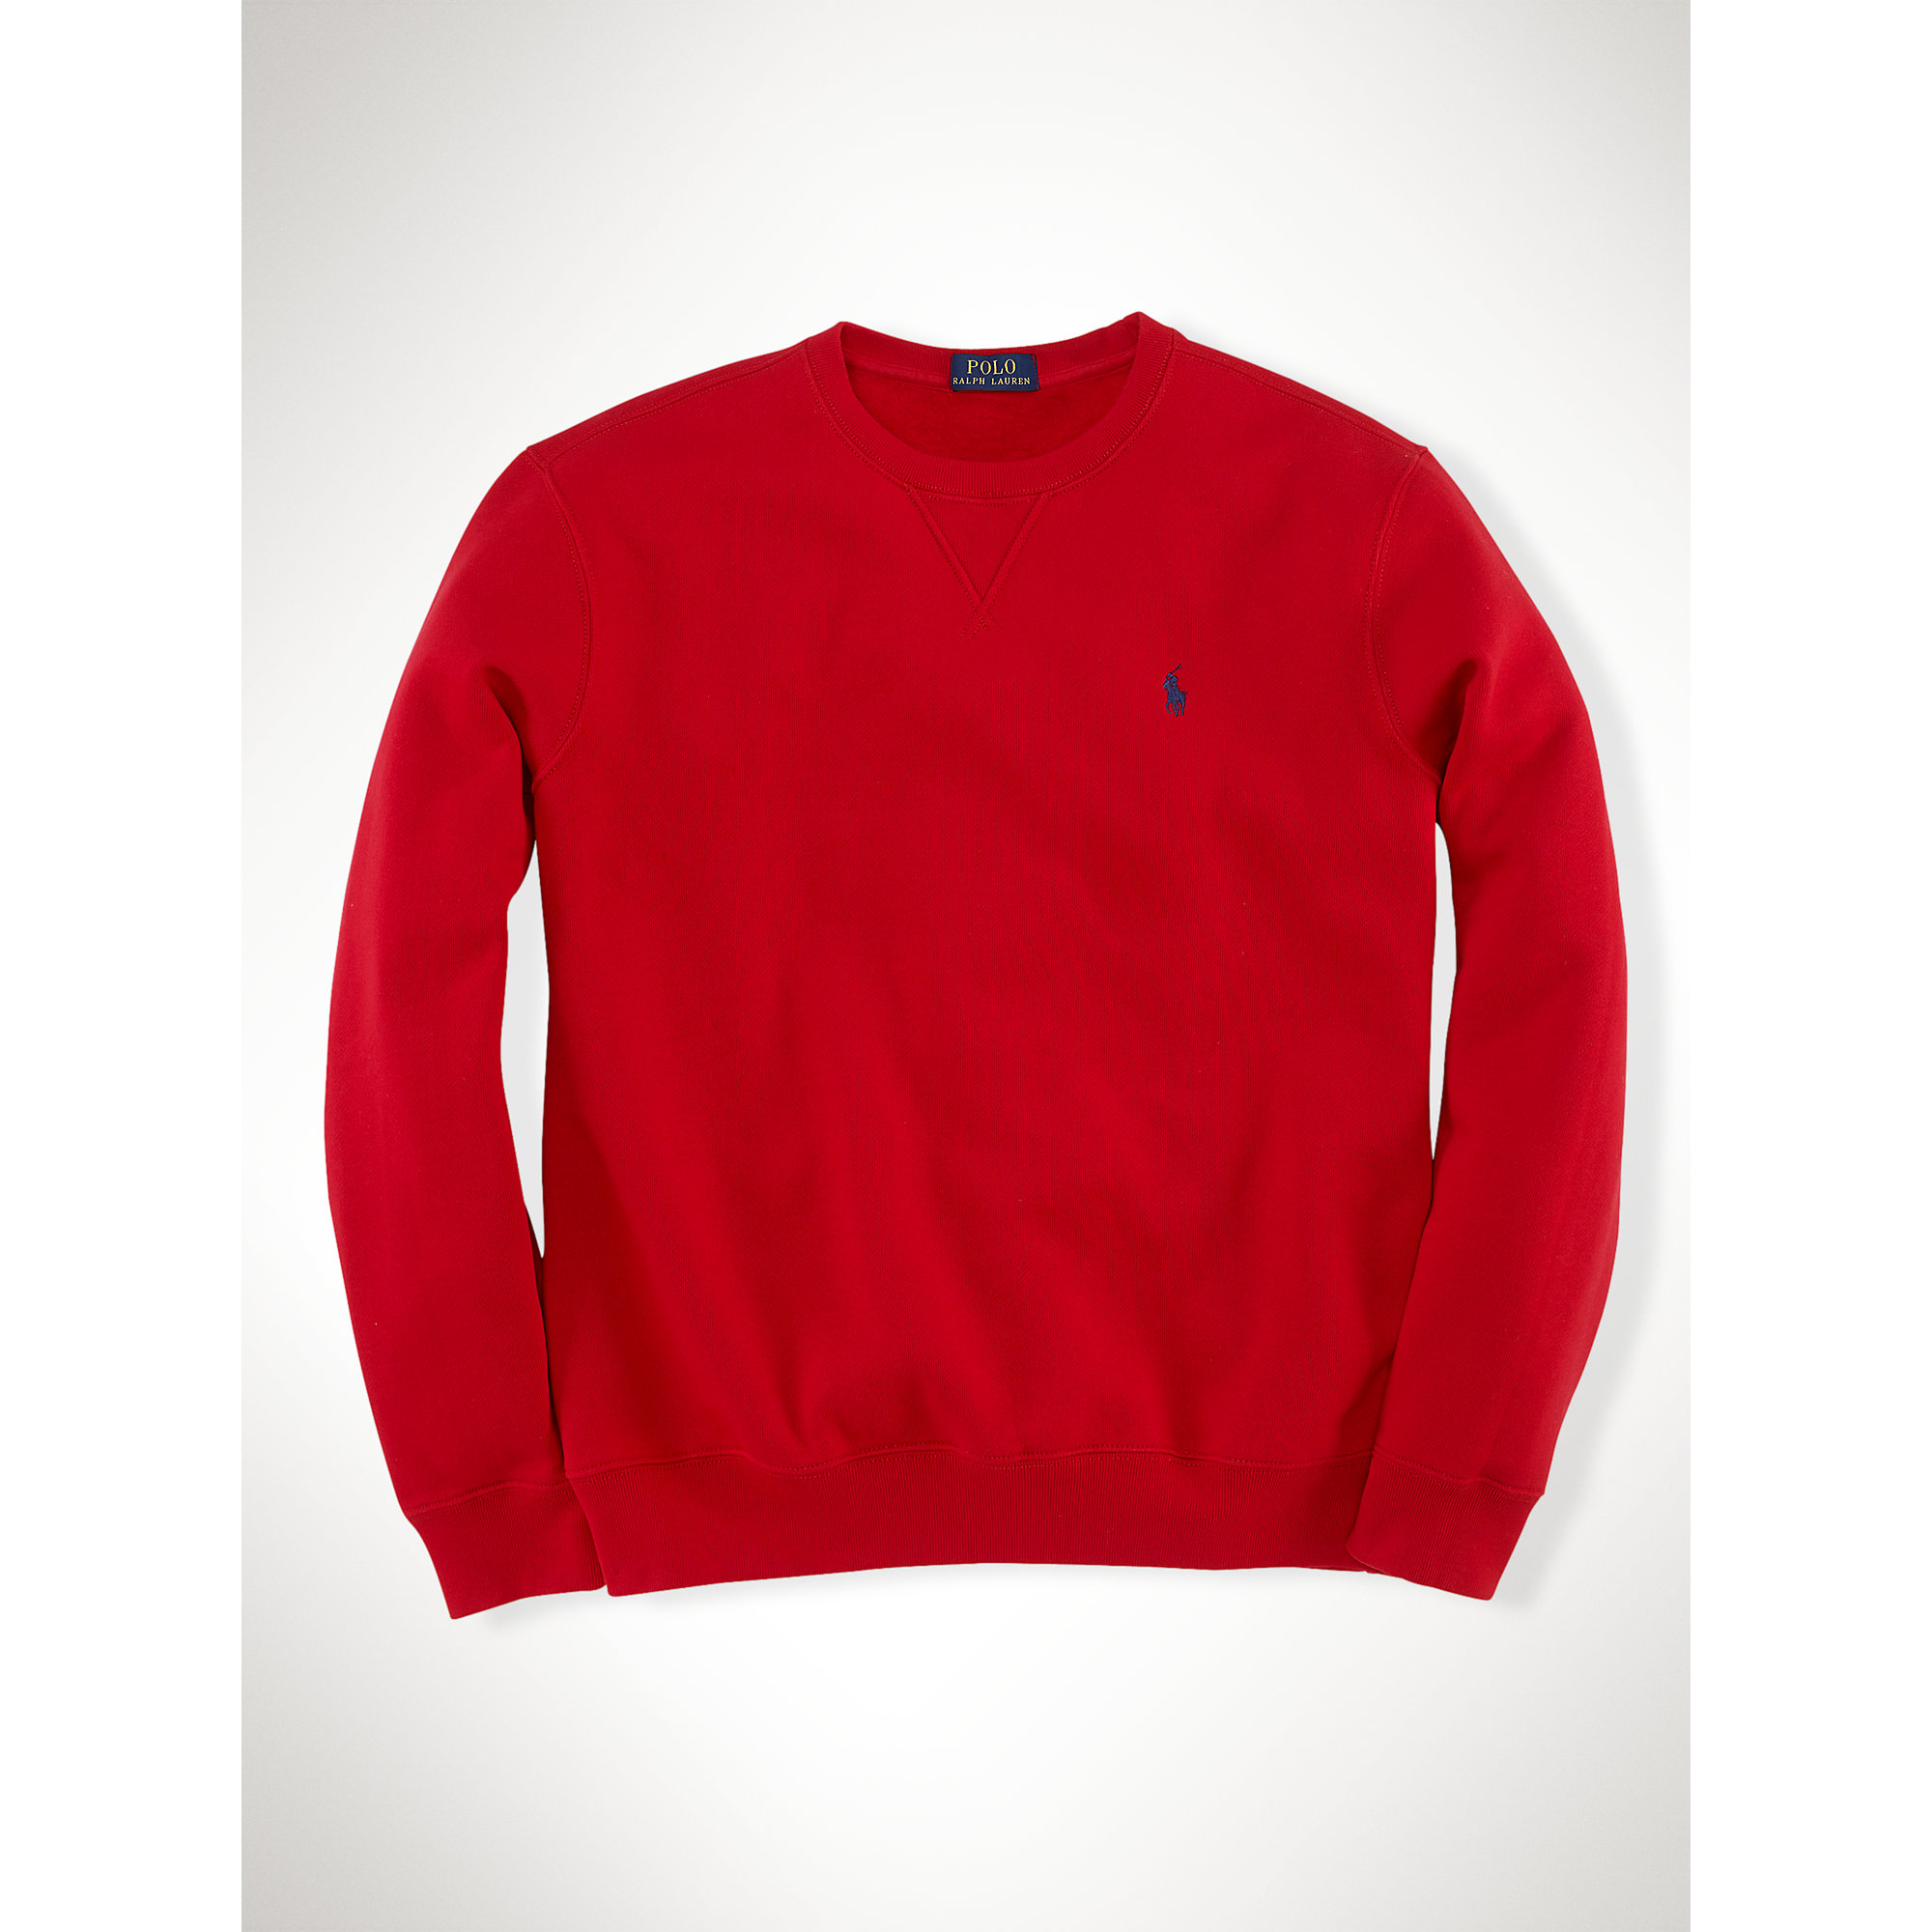 ralph lauren fleece crewneck sweatshirt in red for men lyst. Black Bedroom Furniture Sets. Home Design Ideas